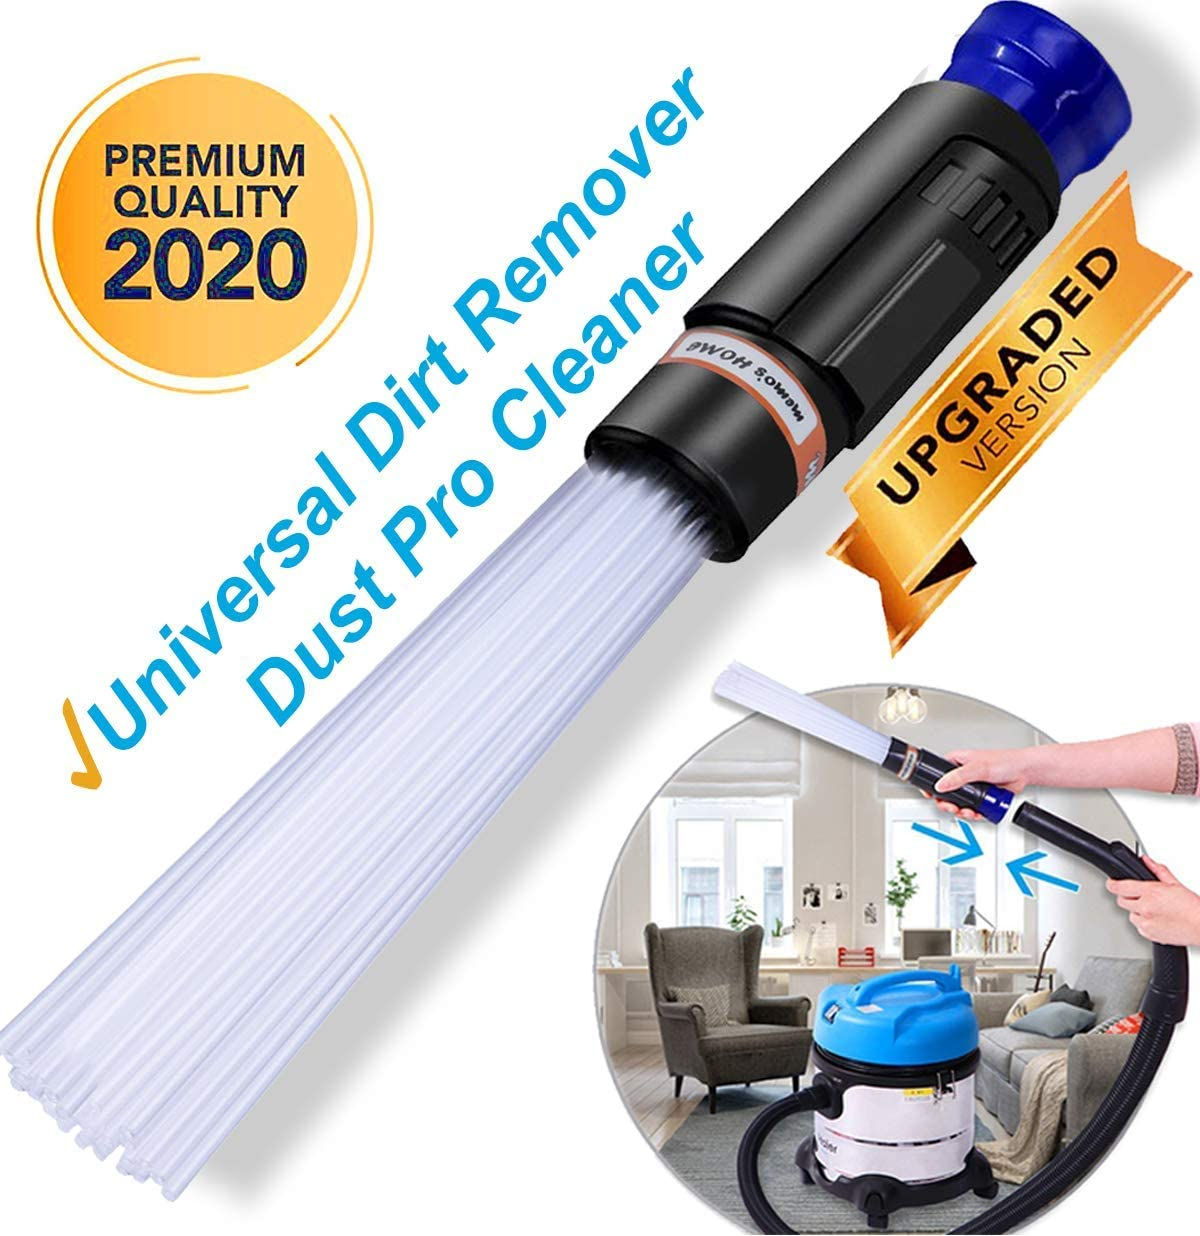 memo's HOME Dust Pro Cleaner - New 2020 Universal Dirt Remover, Sweeper Vacuum Attachment Dust Vac Cleaning Tools with Flexible Dusty Brush, Tiny Tools (Easy Duster)